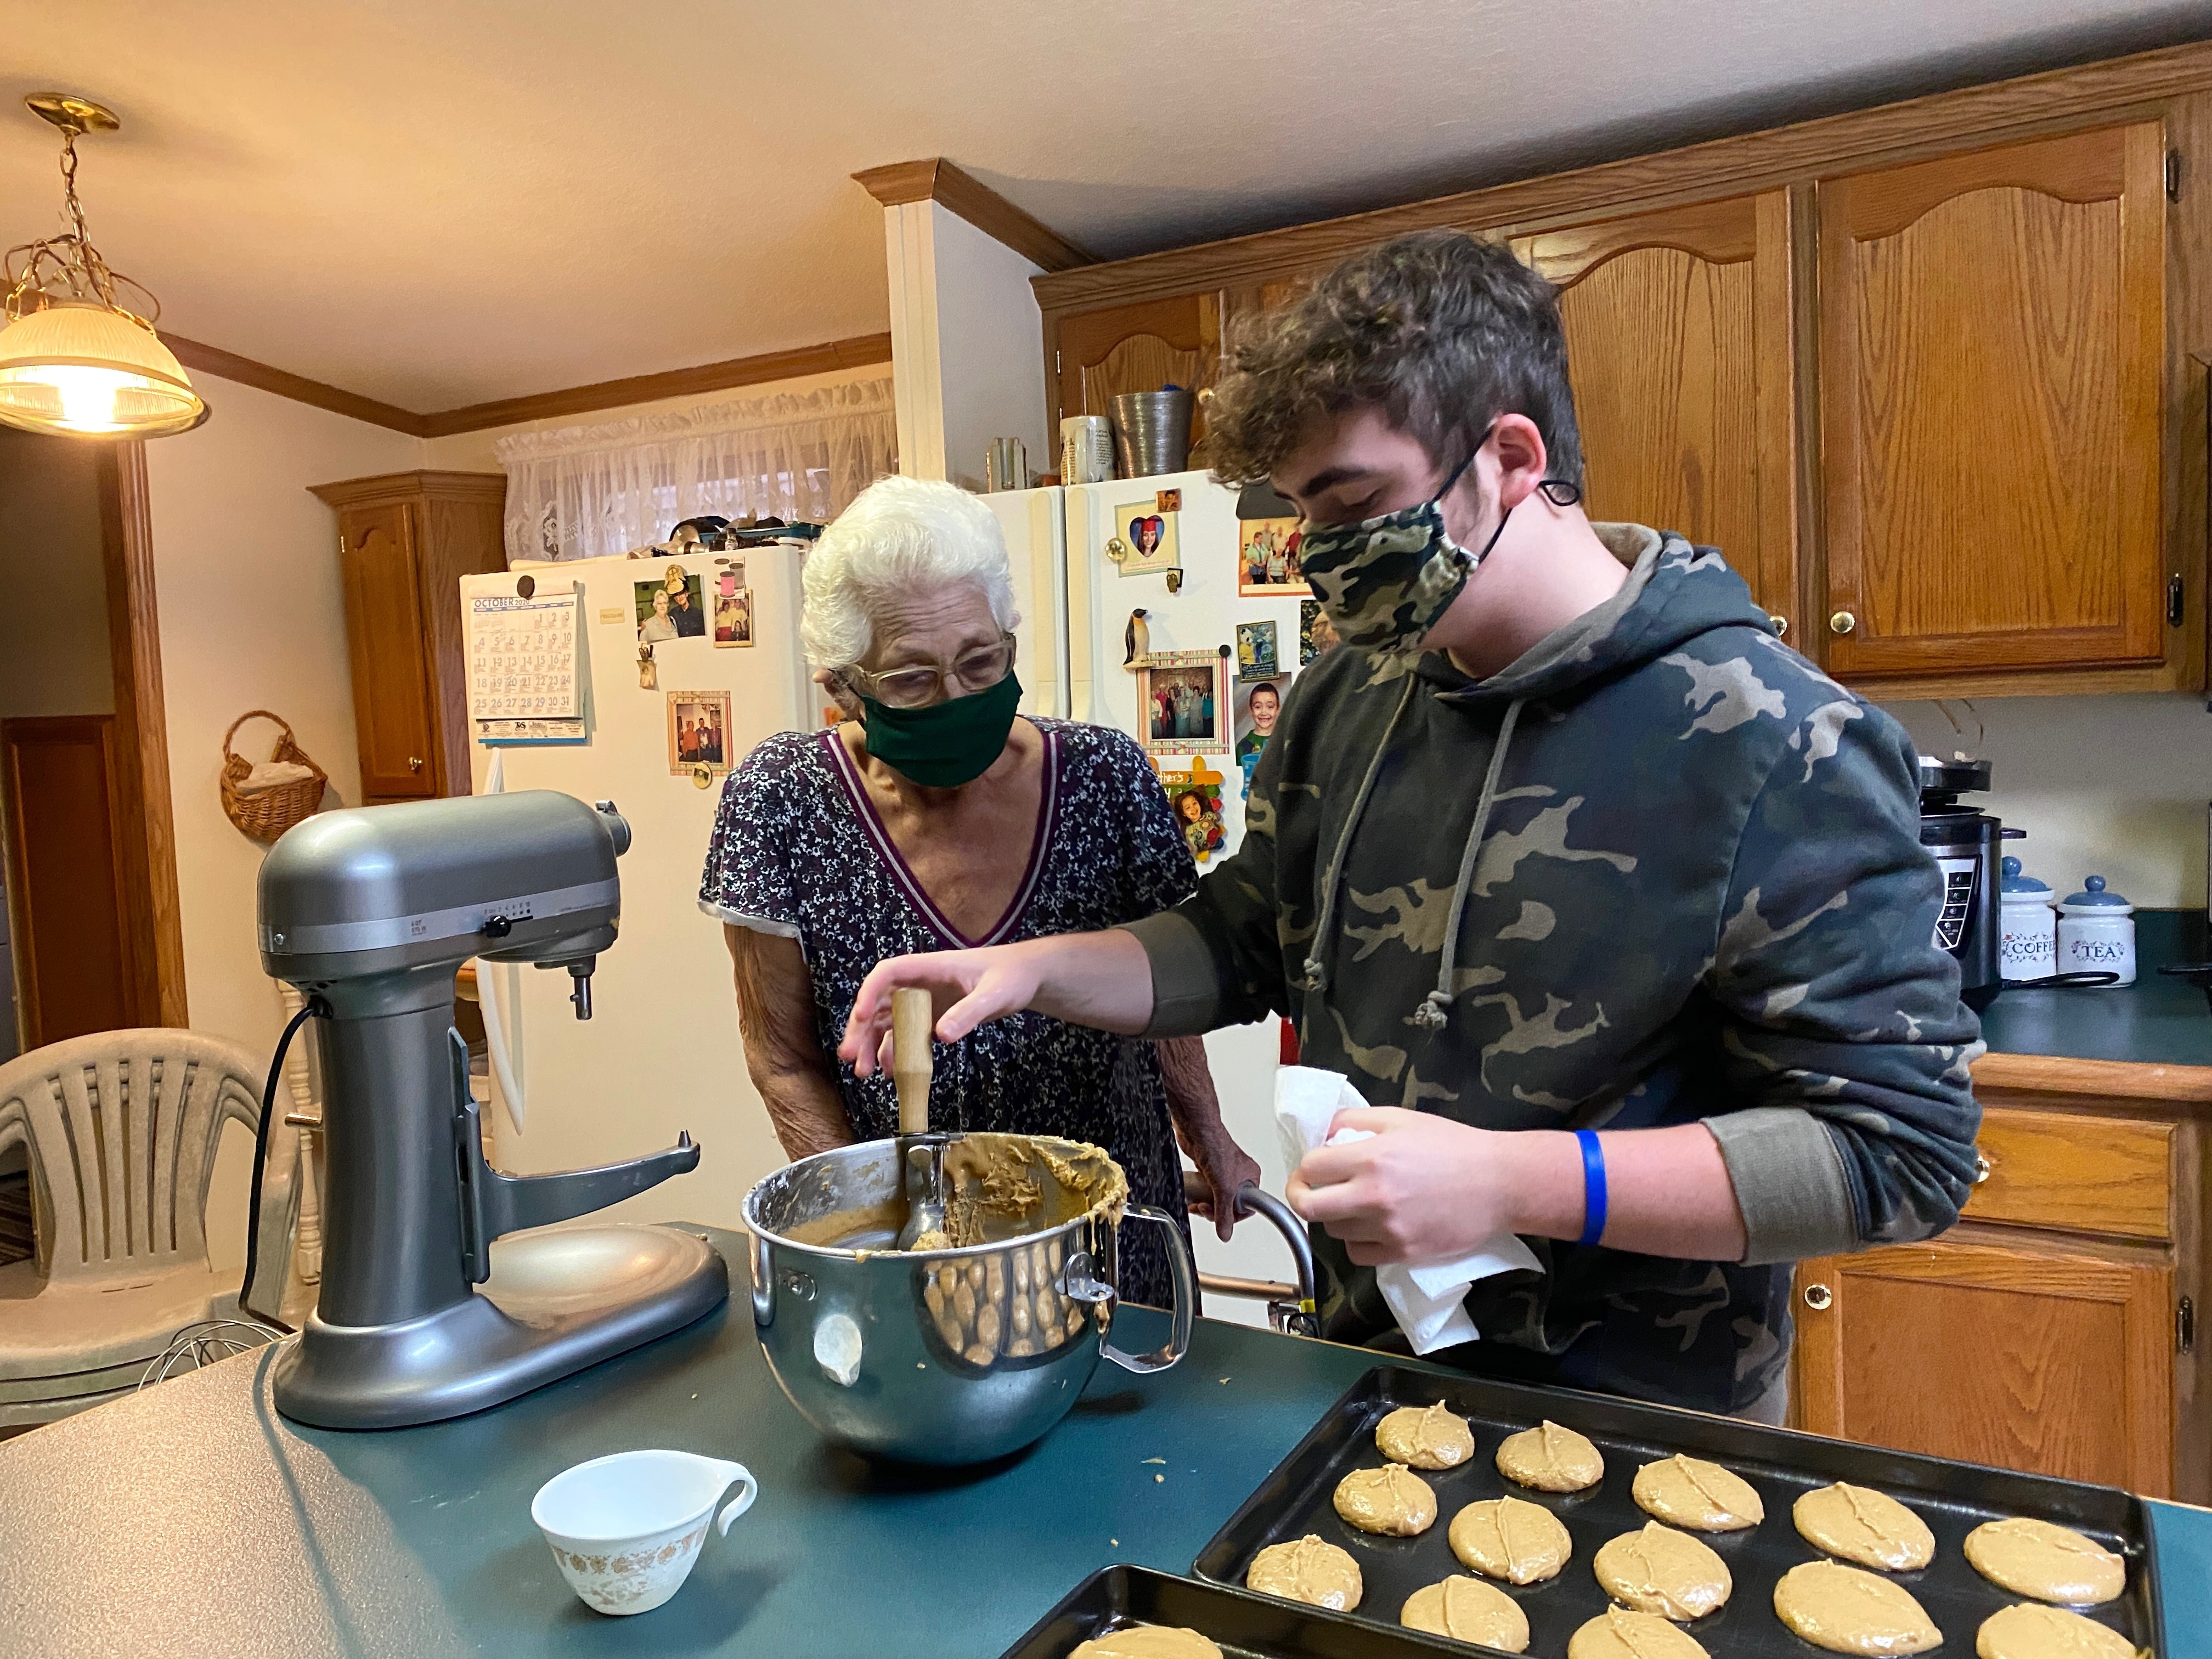 Caption: LaRue Laferty (left) watches her grandson, Jaxon Conley, portion gingerbread batter onto a metal baking sheet in the kitchen of her Knott County home. Growing up in neighboring Floyd County, Laferty's mother used to make gingerbread for candidates during , Credit: Nicole Musgrave, West Virginia Public Broadcasting